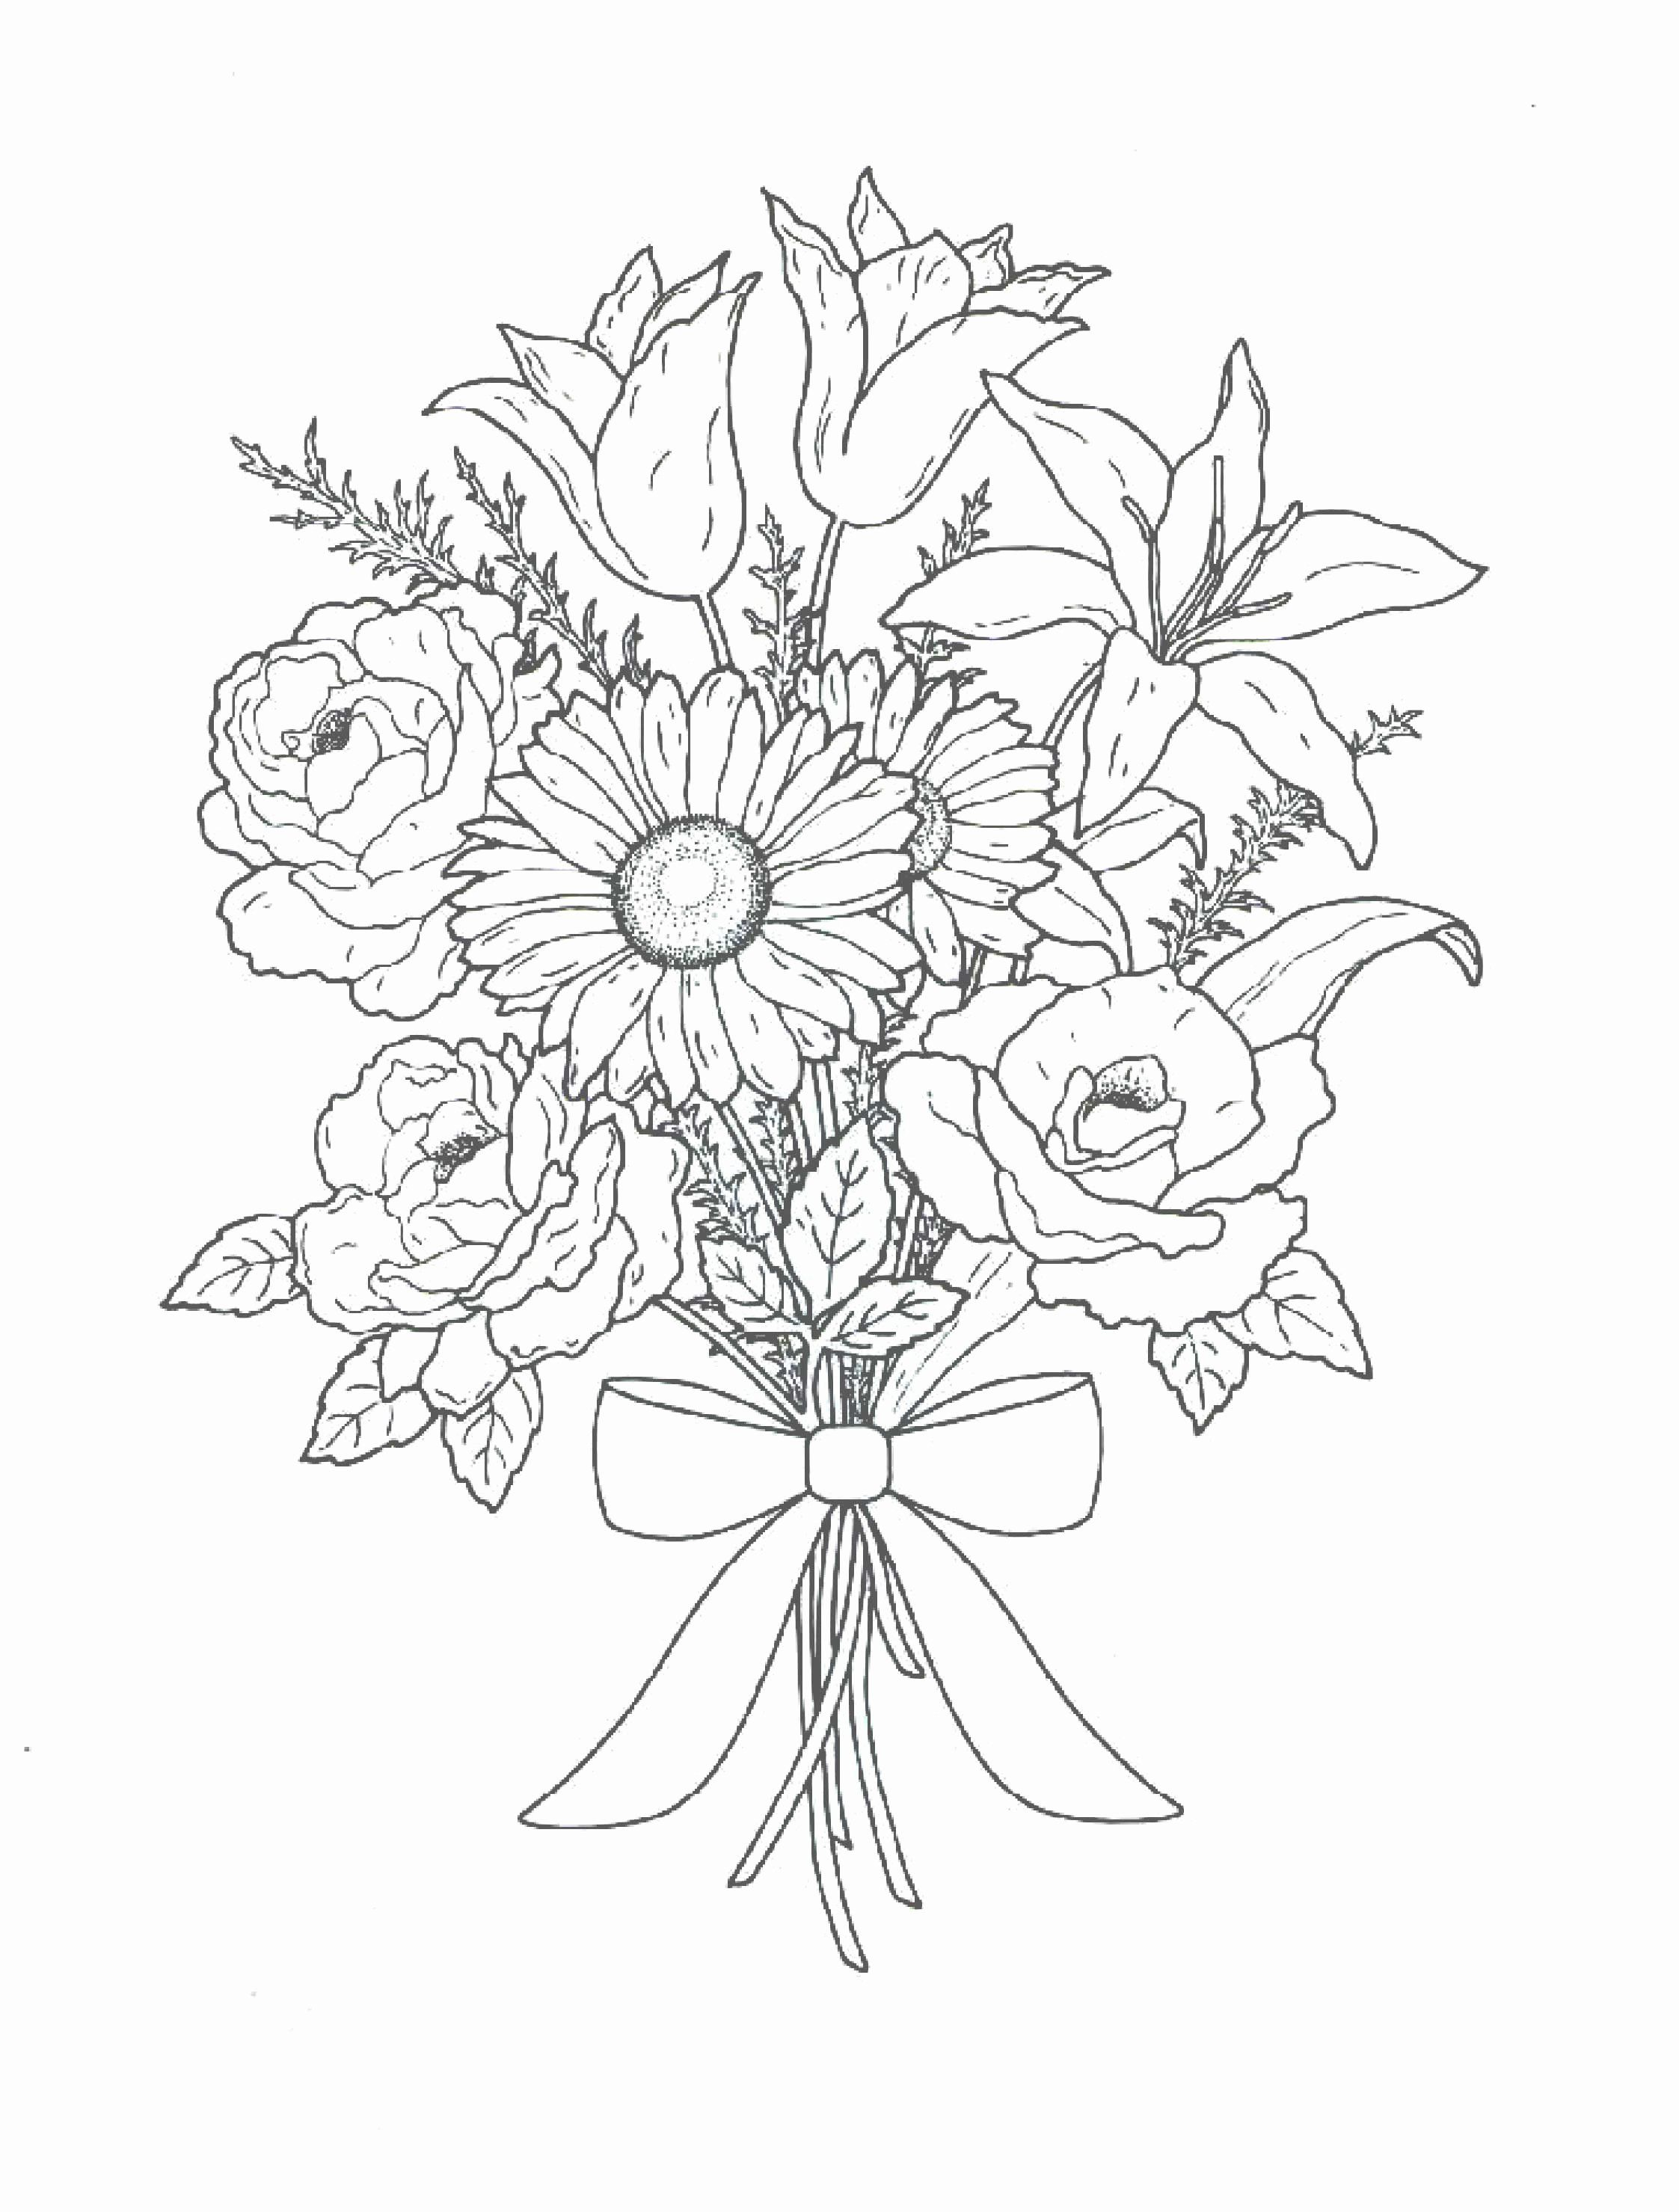 Bouquet Of Flowers Coloring Page Unique Bouquet Flowers Coloring Pages For Childrens Printable Flower Coloring Pages Coloring Pages Flower Bouquet Drawing